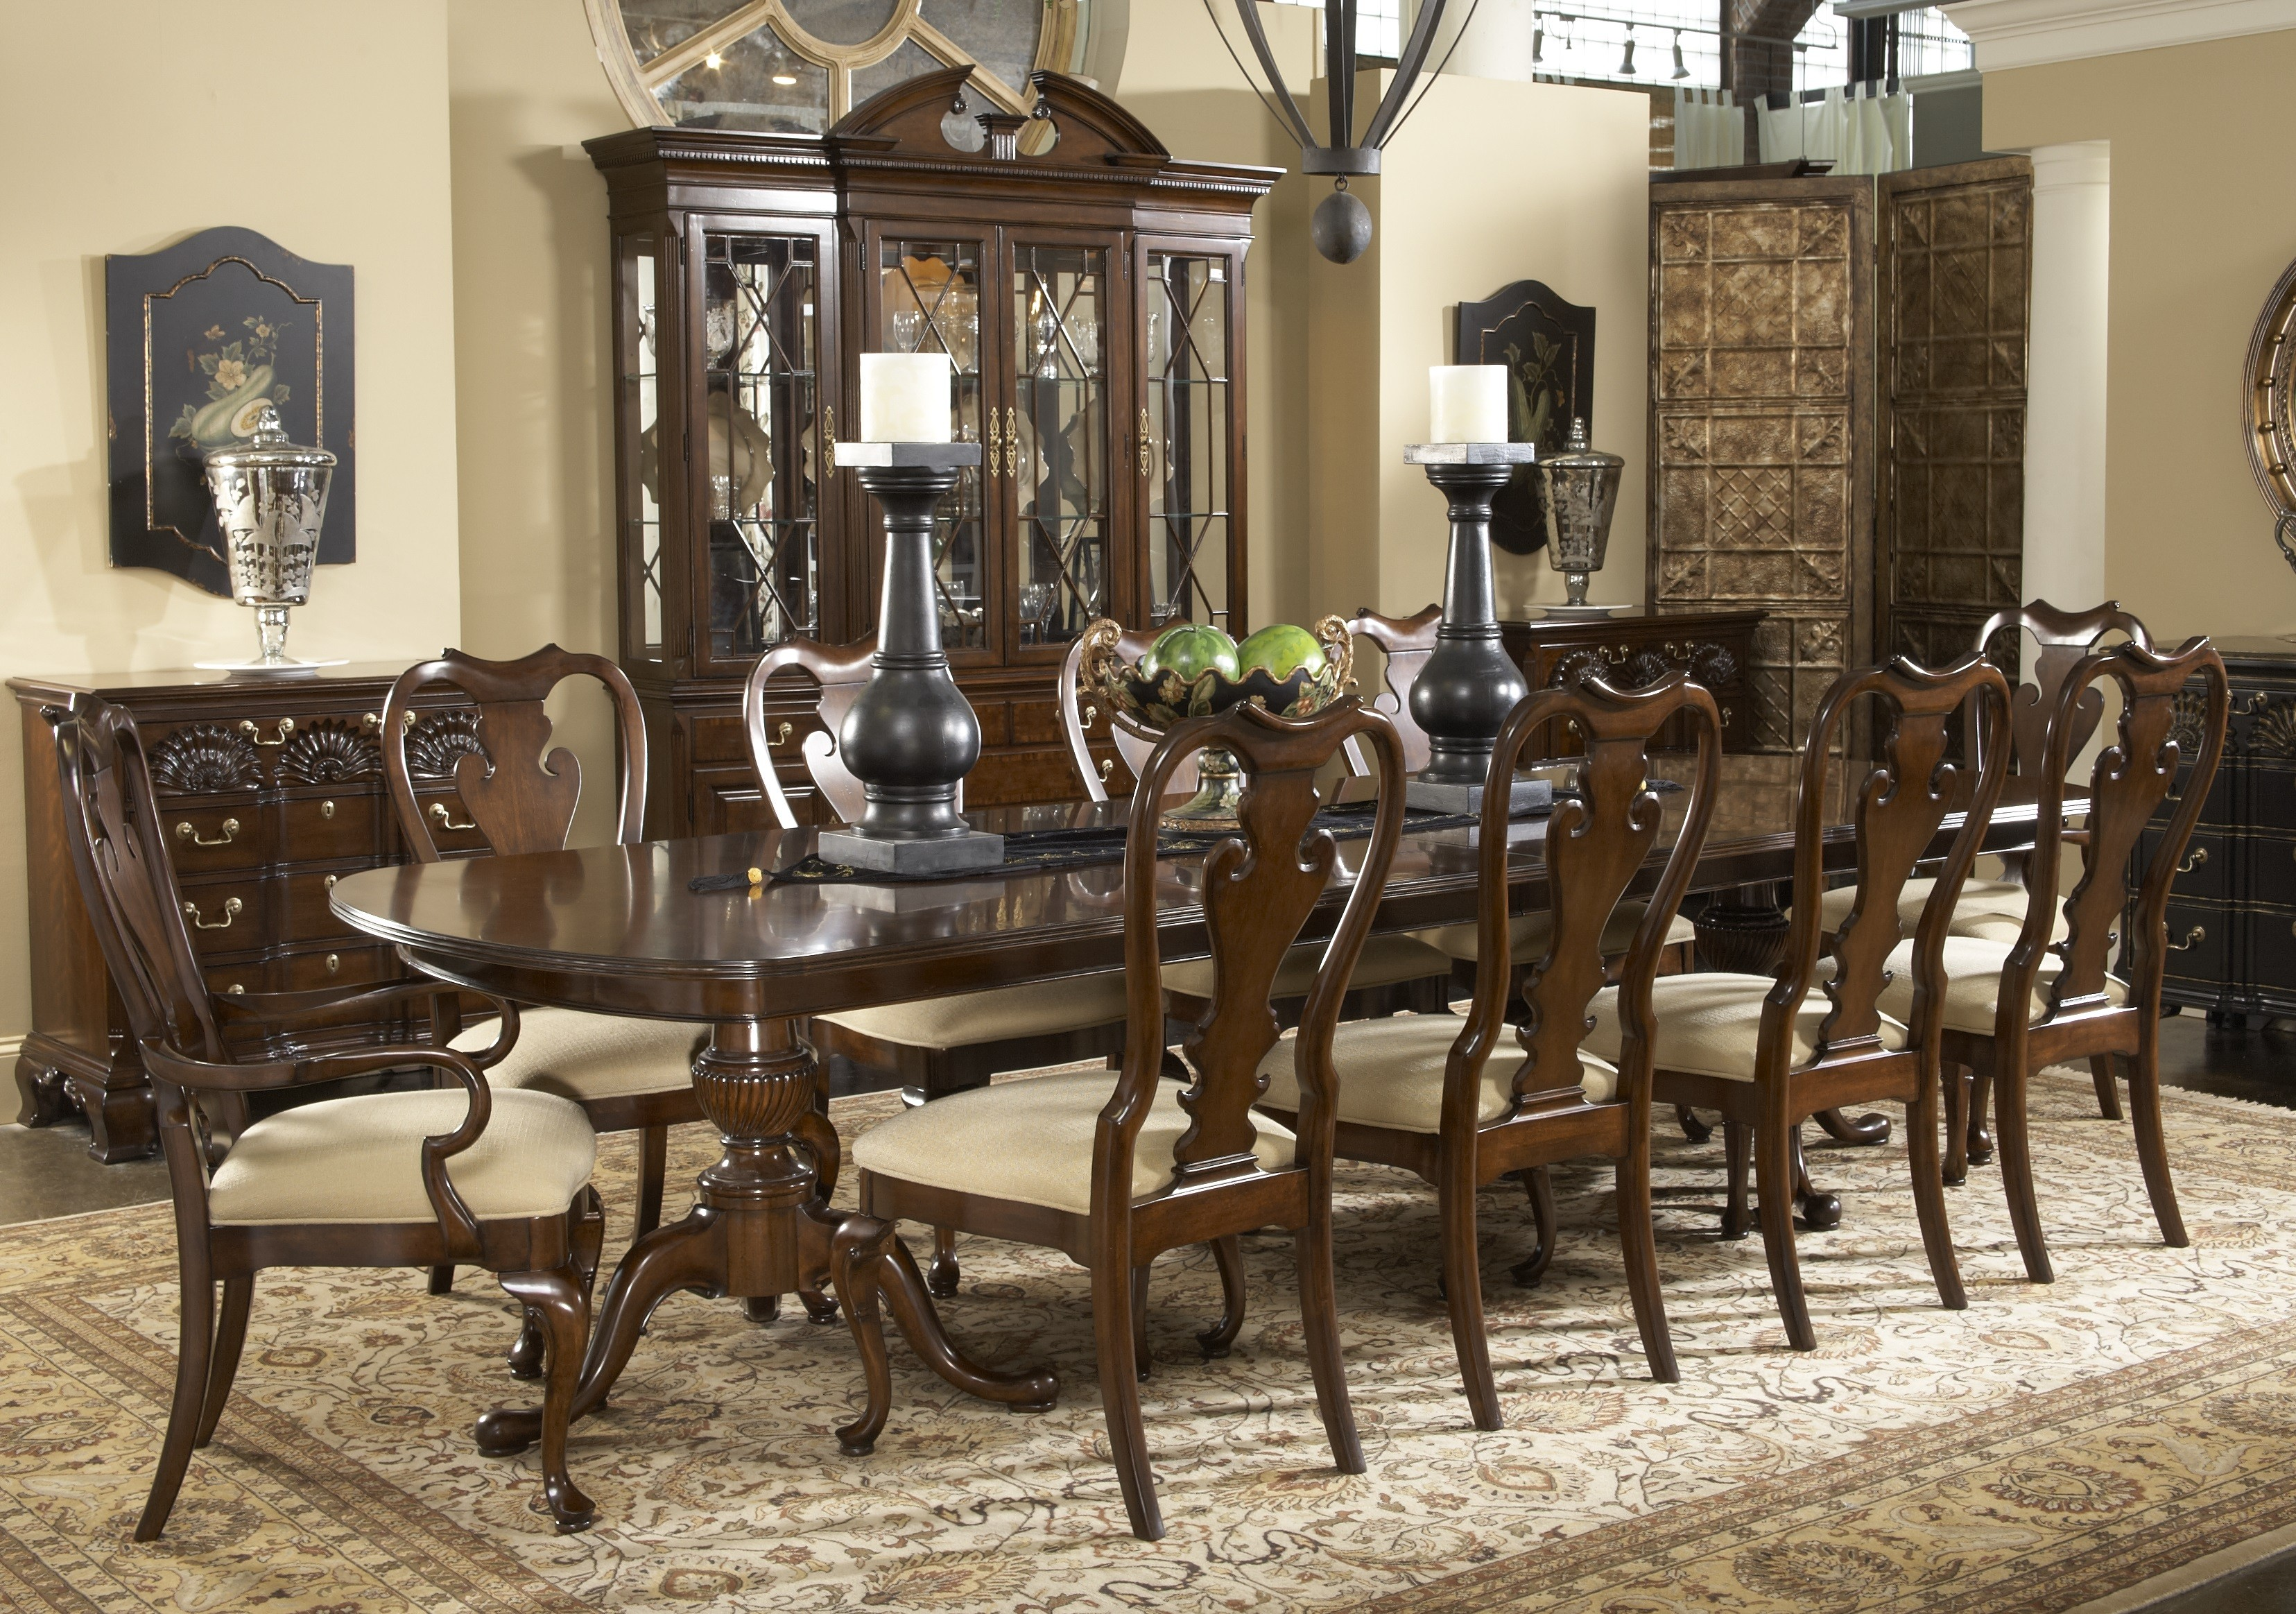 Buy American Cherry Fredericksburg Dining Table Table by Fine Furniture  Design from www.Traveller Location. Sku: 1020-818-819